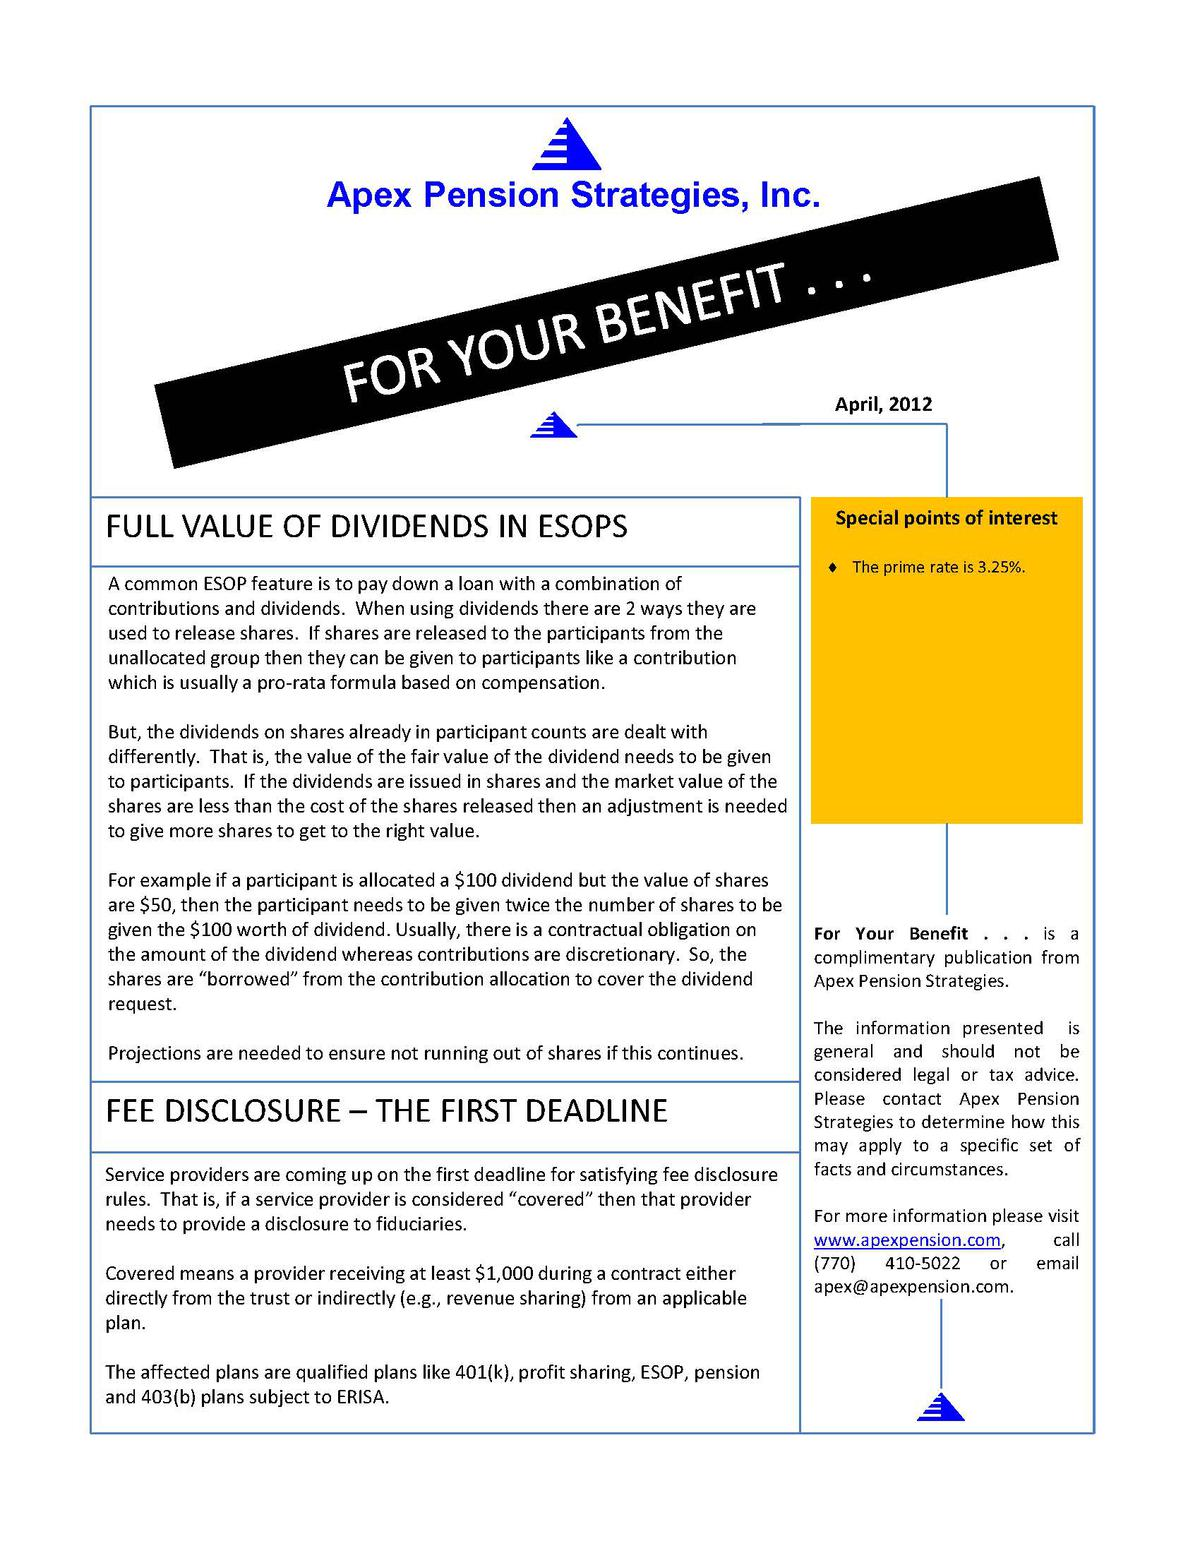 Fee Disclosure - The First Deadline